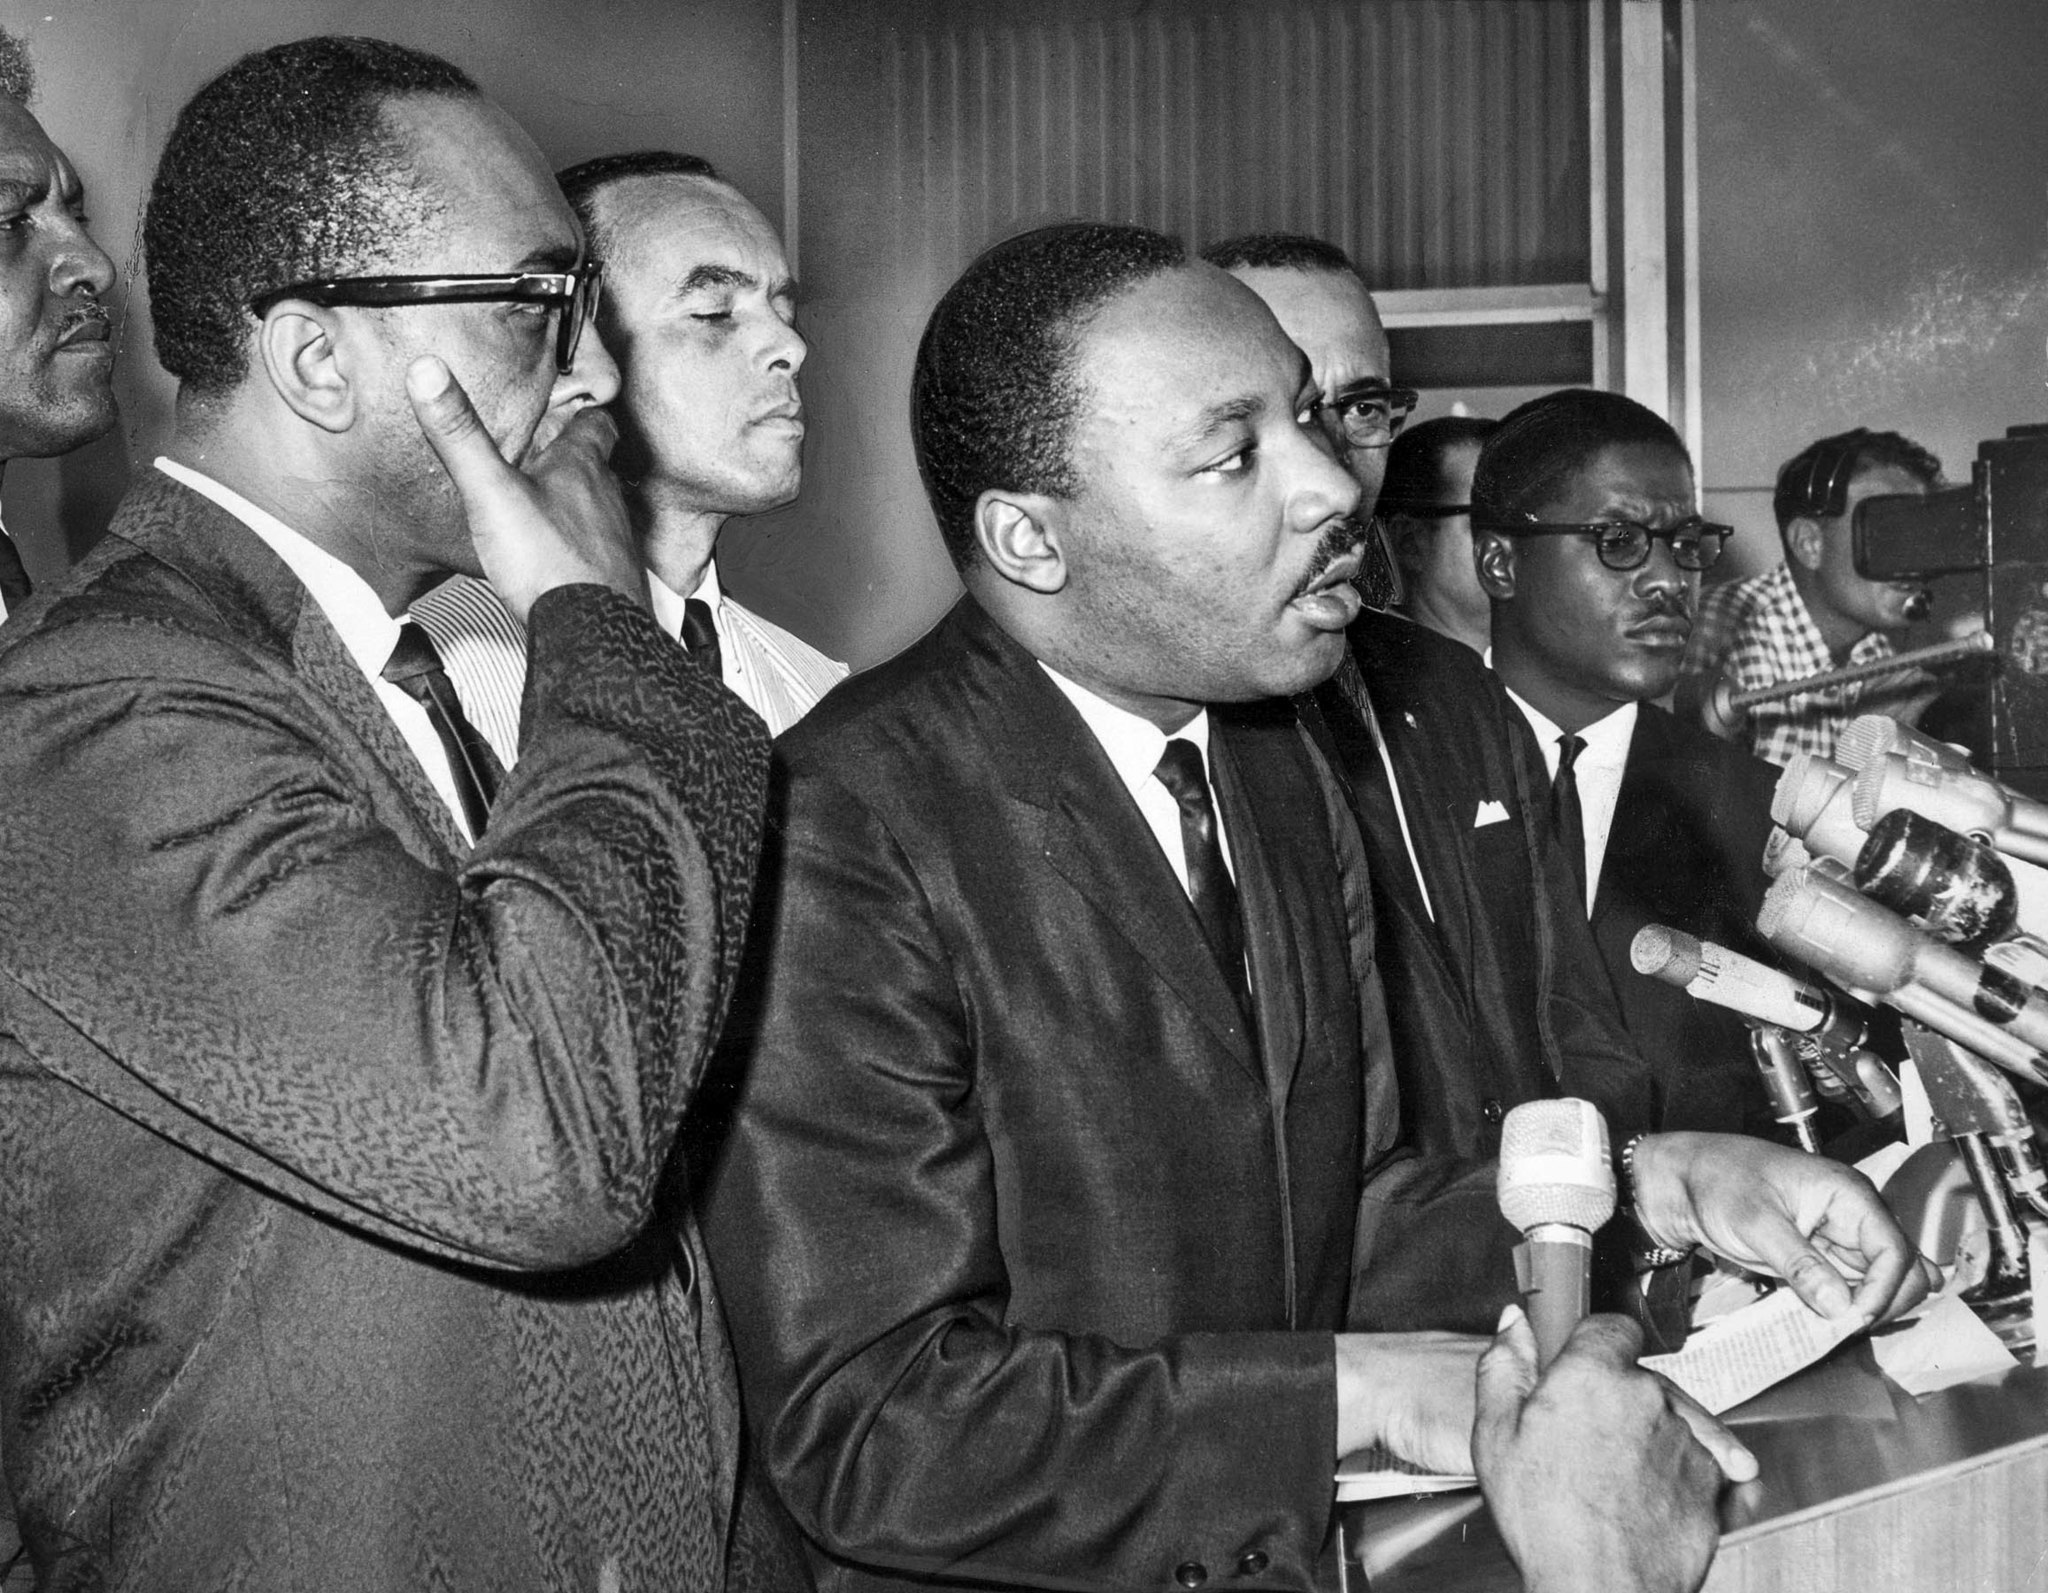 Aug. 17, 1965: Dr. Martin Luther King at podium after arrival at Los Angeles International Airport.